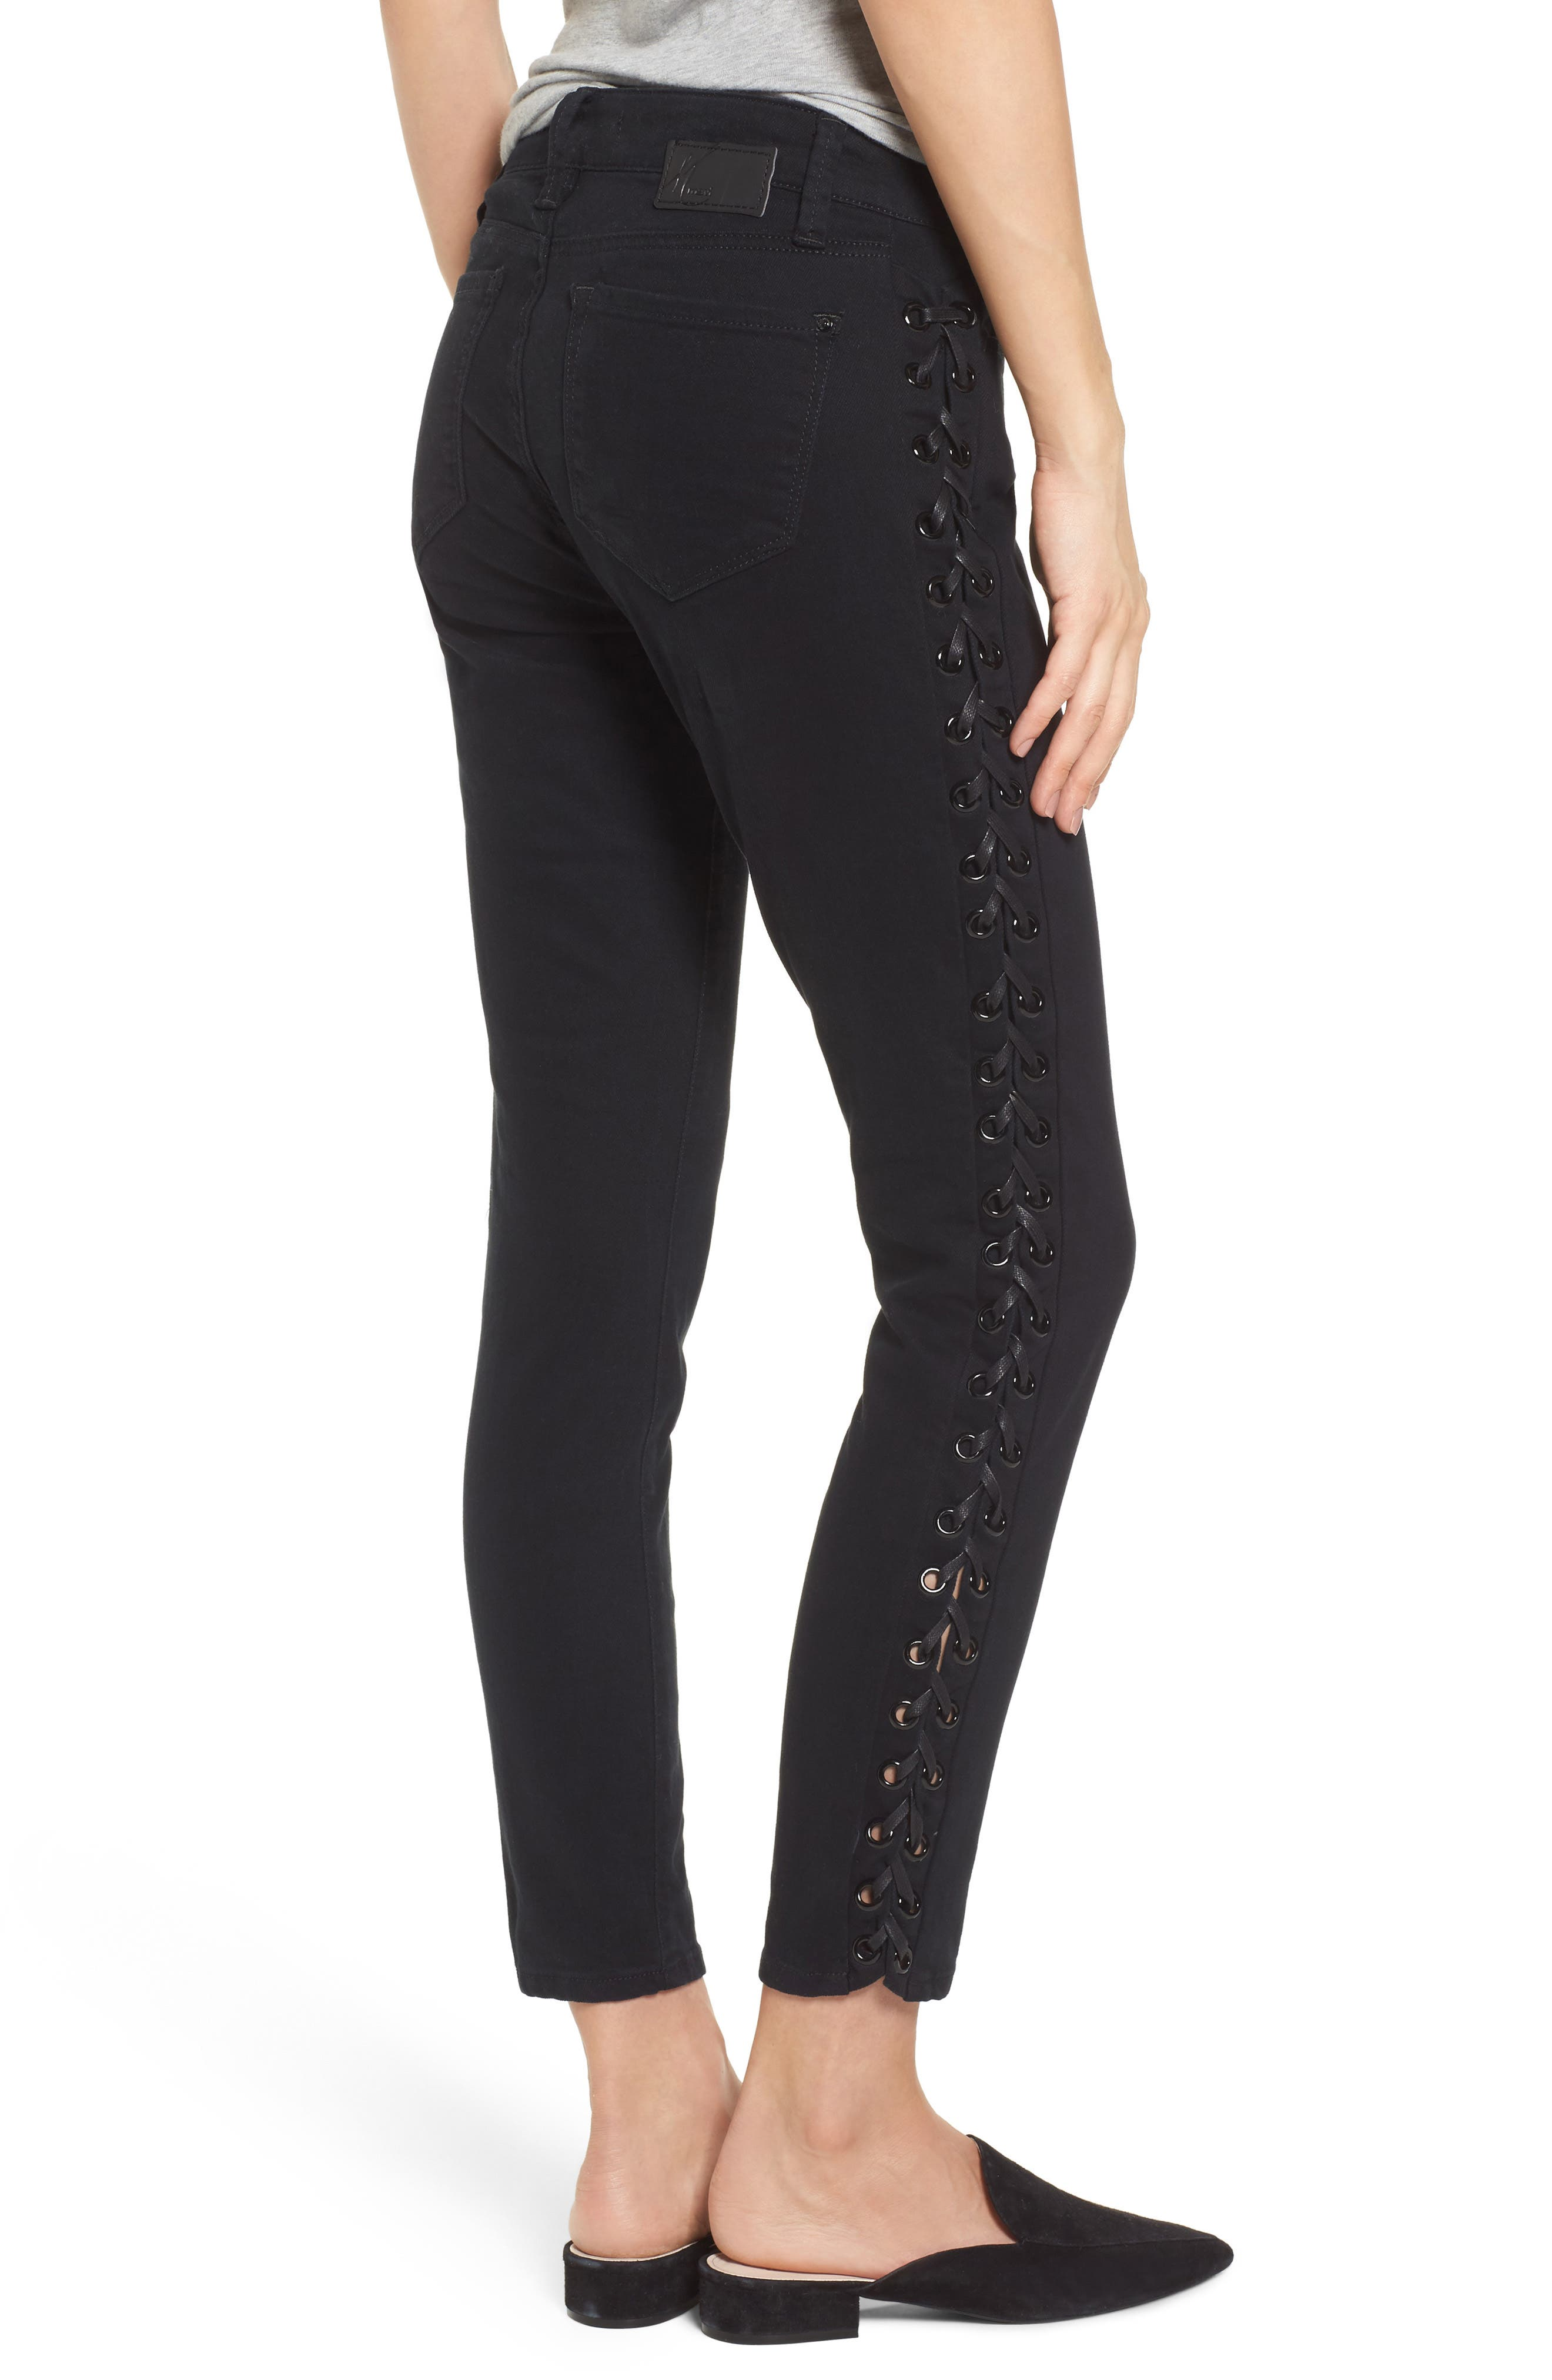 Adriana Lace-Up Super Skinny Jeans,                             Alternate thumbnail 2, color,                             001